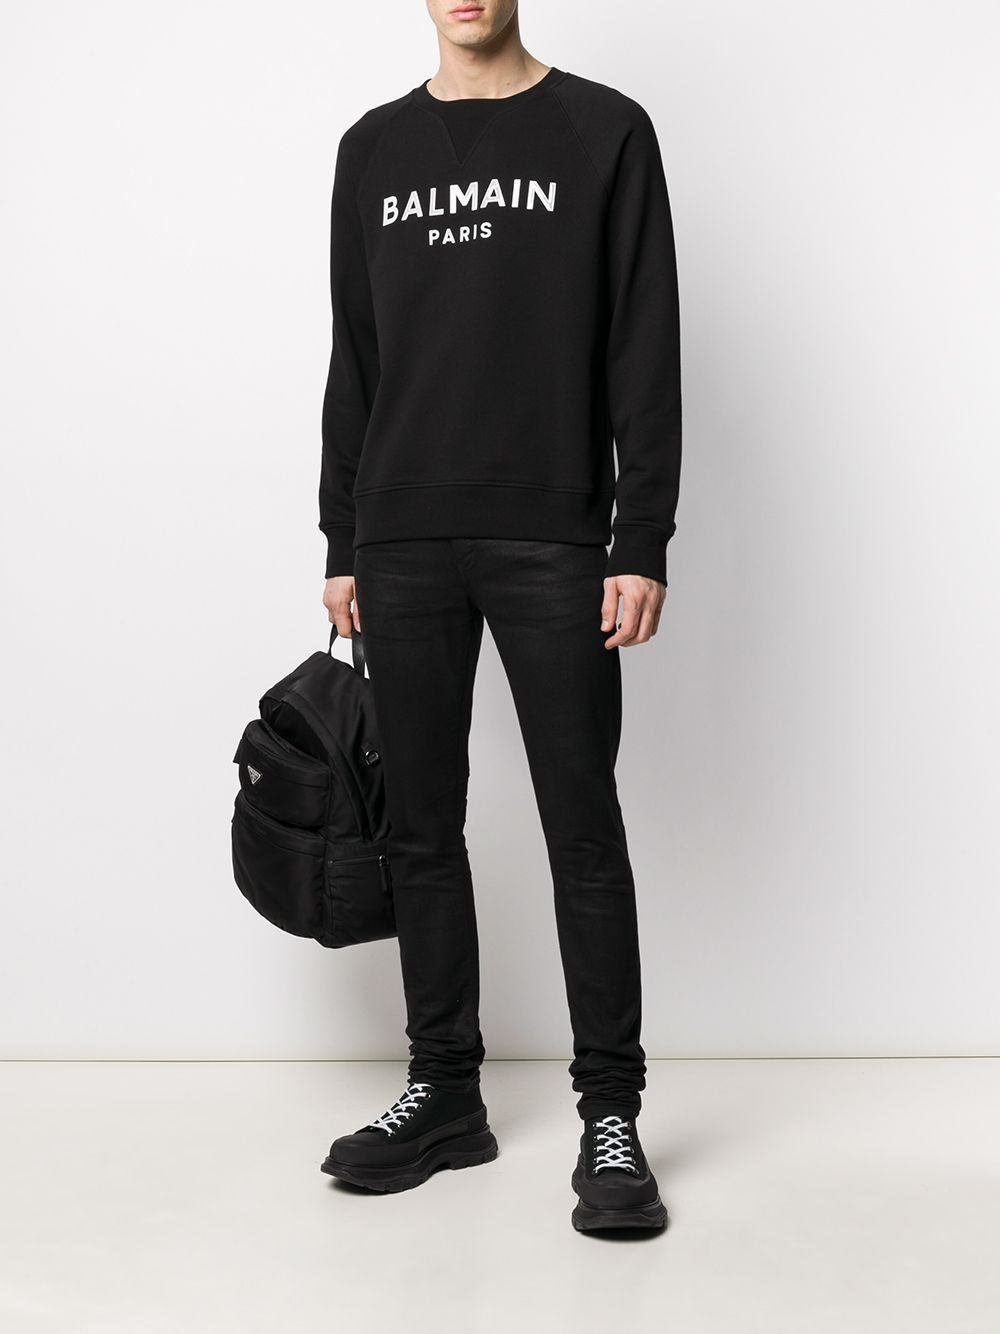 BALMAIN gel logo sweatshirt black/white